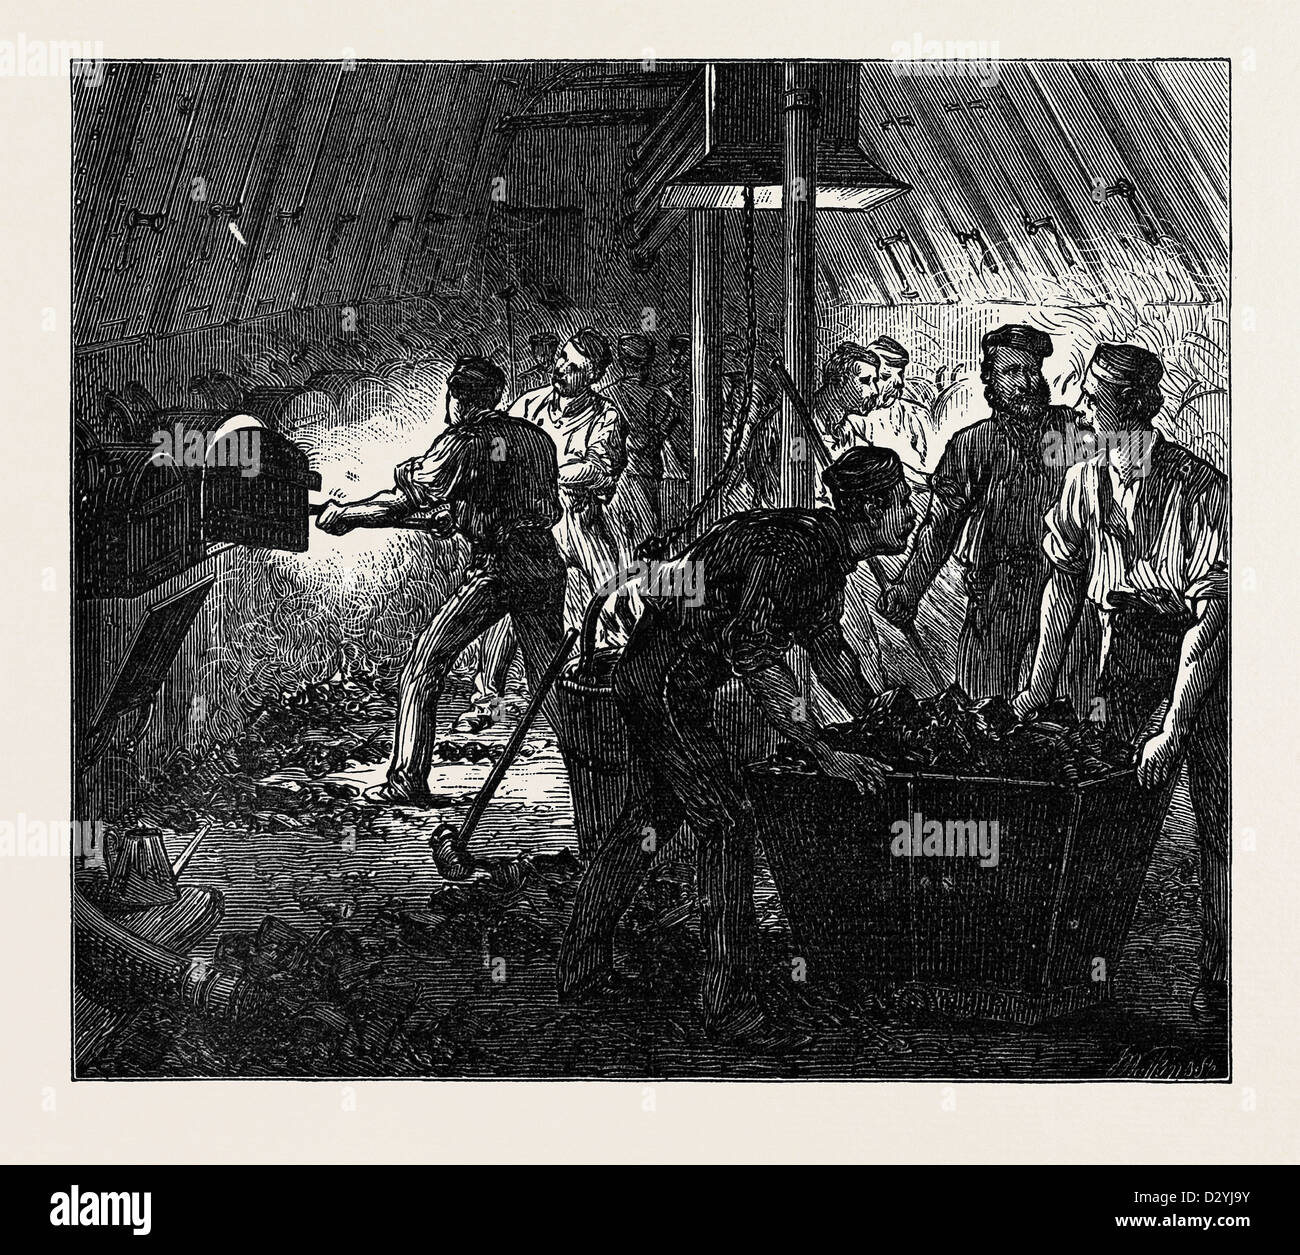 LIFE ON BOARD A TROOP SHIP: THE STOKEHOLE 1874 - Stock Image